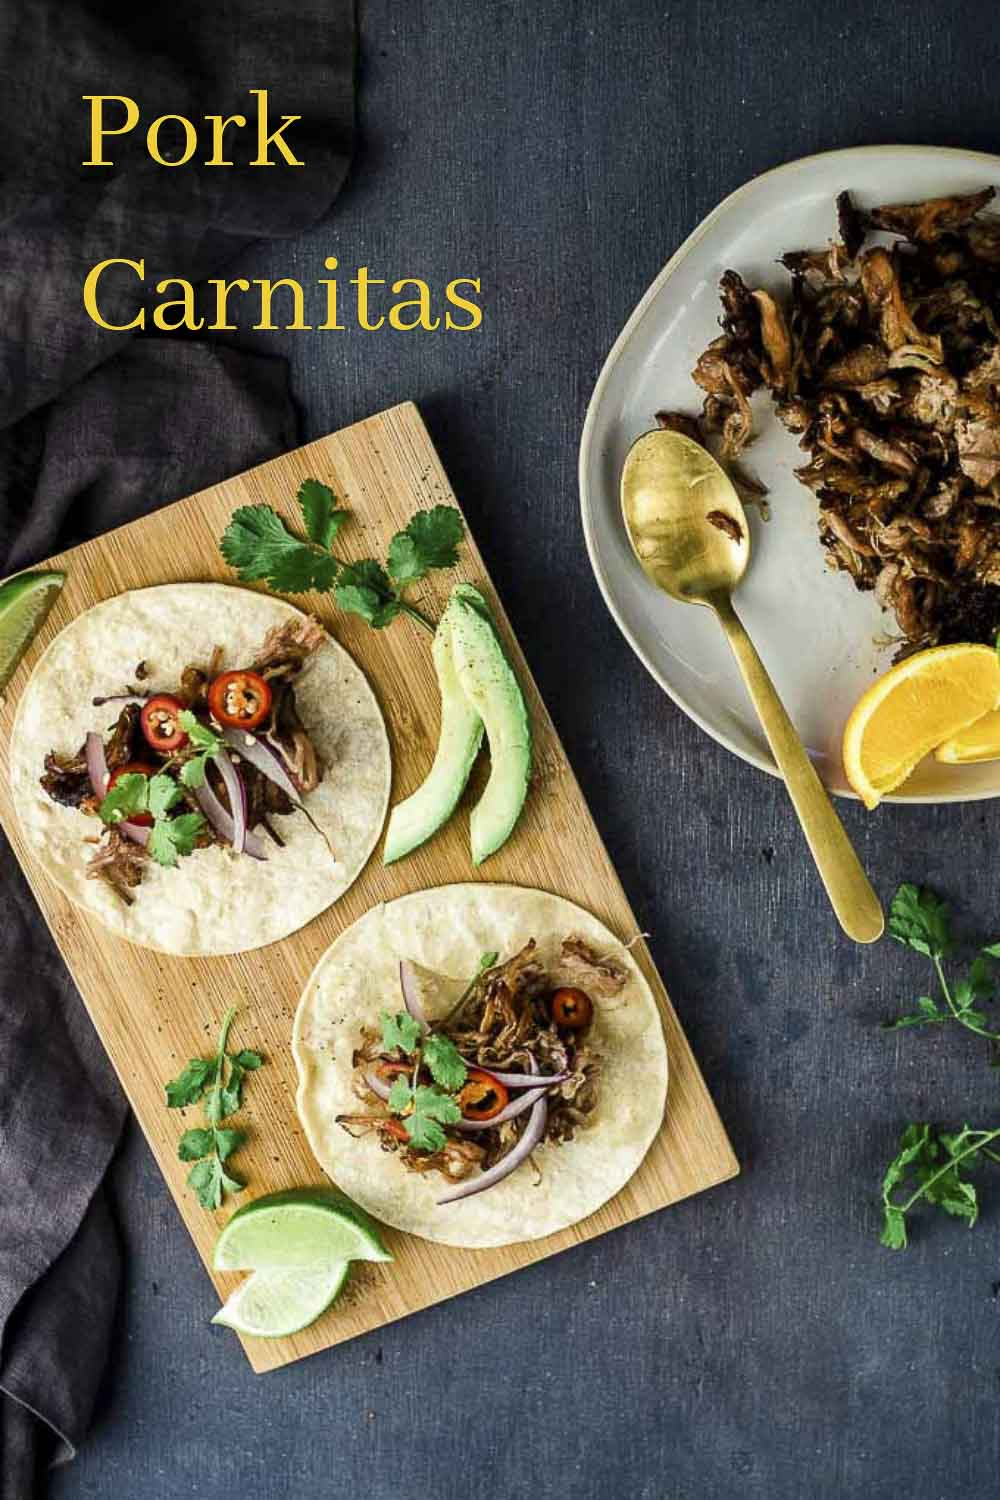 Tender, juicy pieces of shredded slow cooked pork crisped in the oven and served in warmed tortillas, this Pork Carnitas Recipe is incredible! Super easy to make, you can basically just set it and forget it. Take a couple minutes at the end to crisp up the pork carnitas and you\'ve got the perfect weeknight meal everyone will love! #wenthere8this #porkcarnitas #porkcarnitastacos #carnitastacos